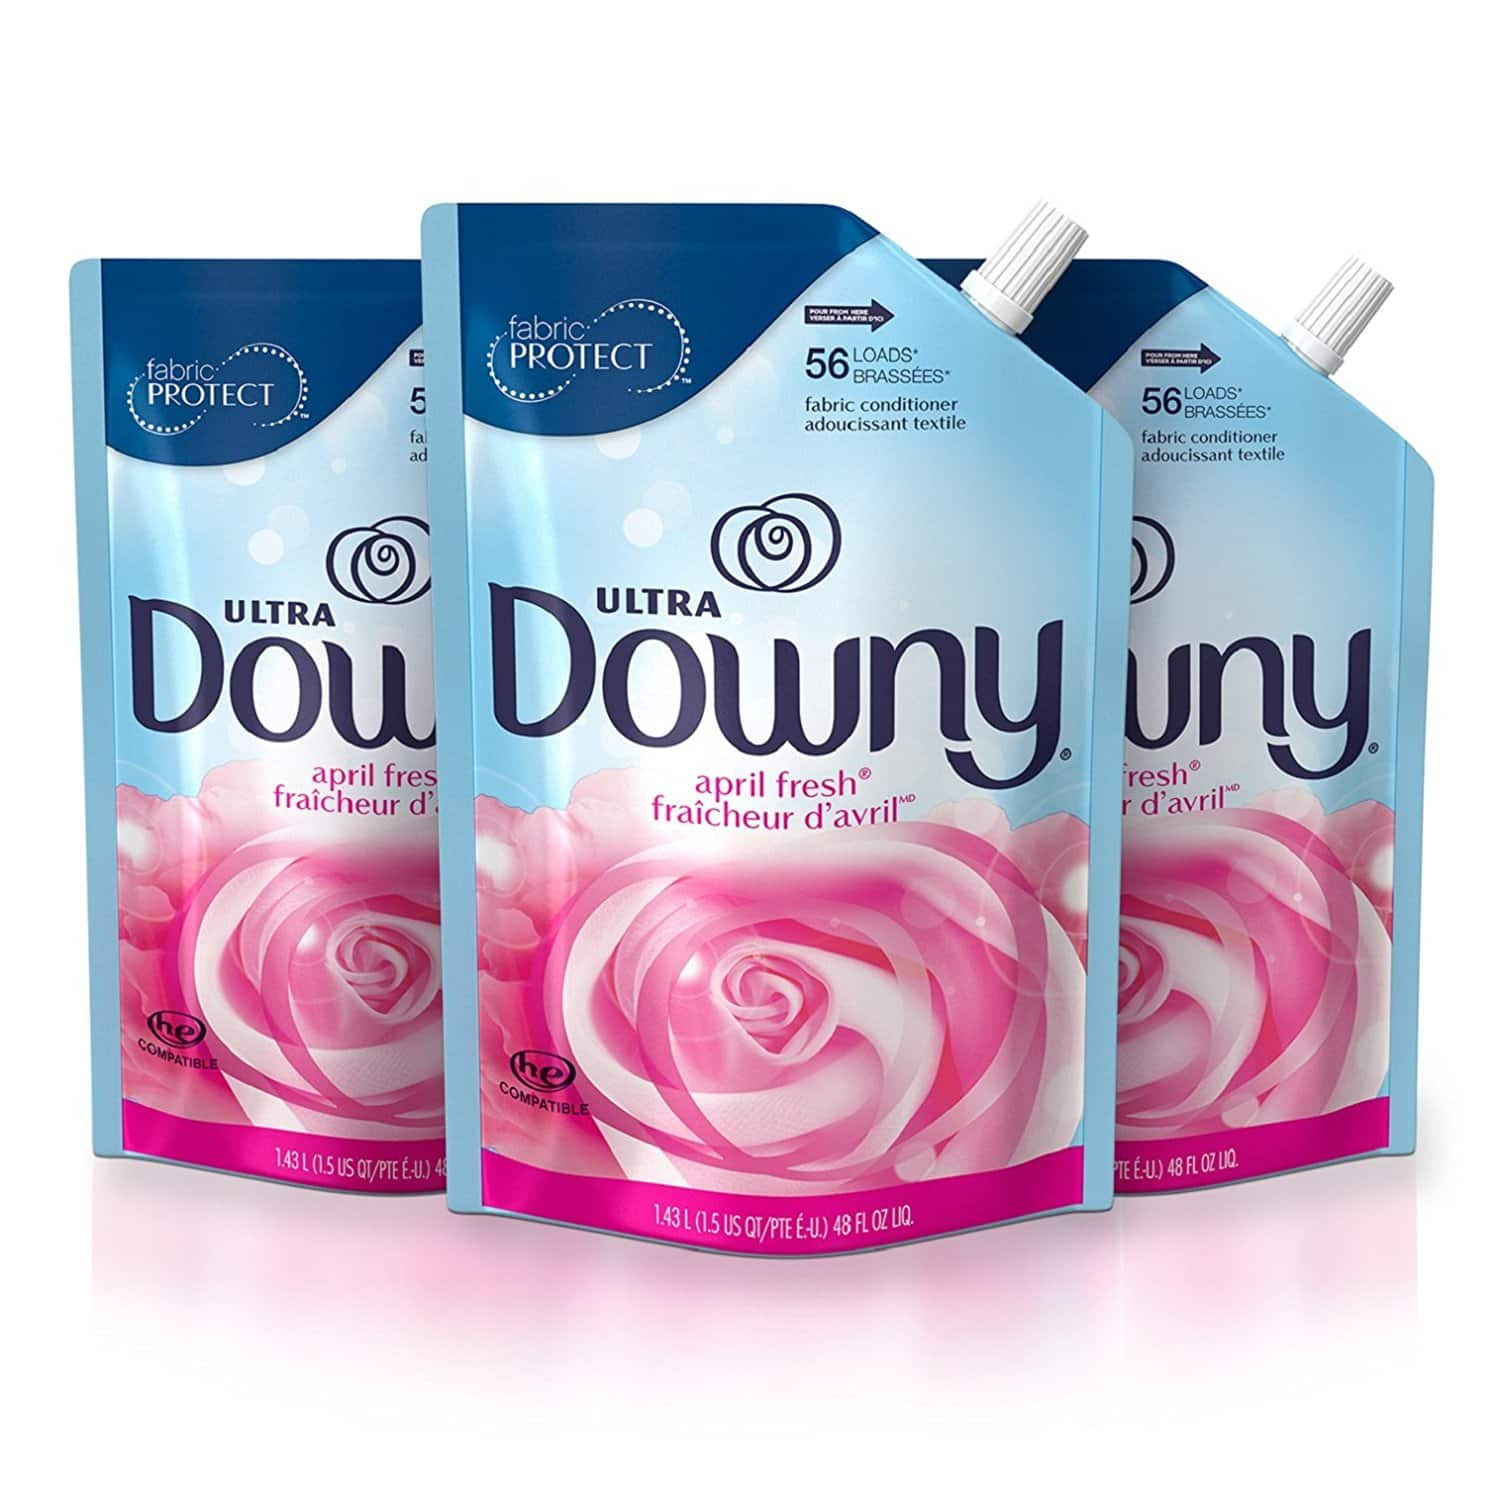 Downy Ultra Liquid Fabric Softener Smart Pouches, April Fresh (3-Pack) For $9.79 w/coupon + S&S